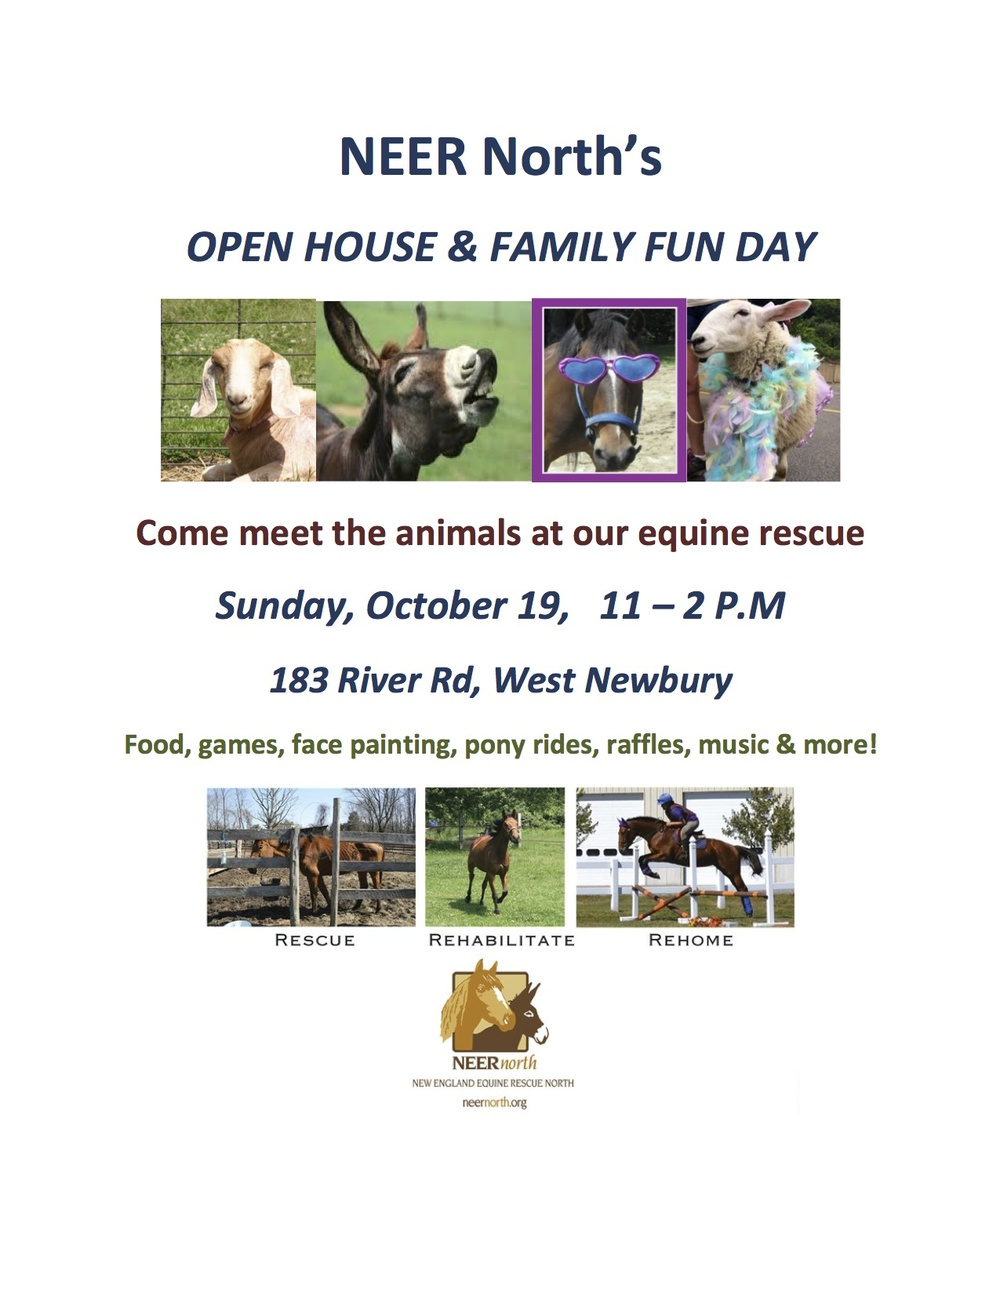 Come meet the horses and other animals at New England Equine Rescue.jpg